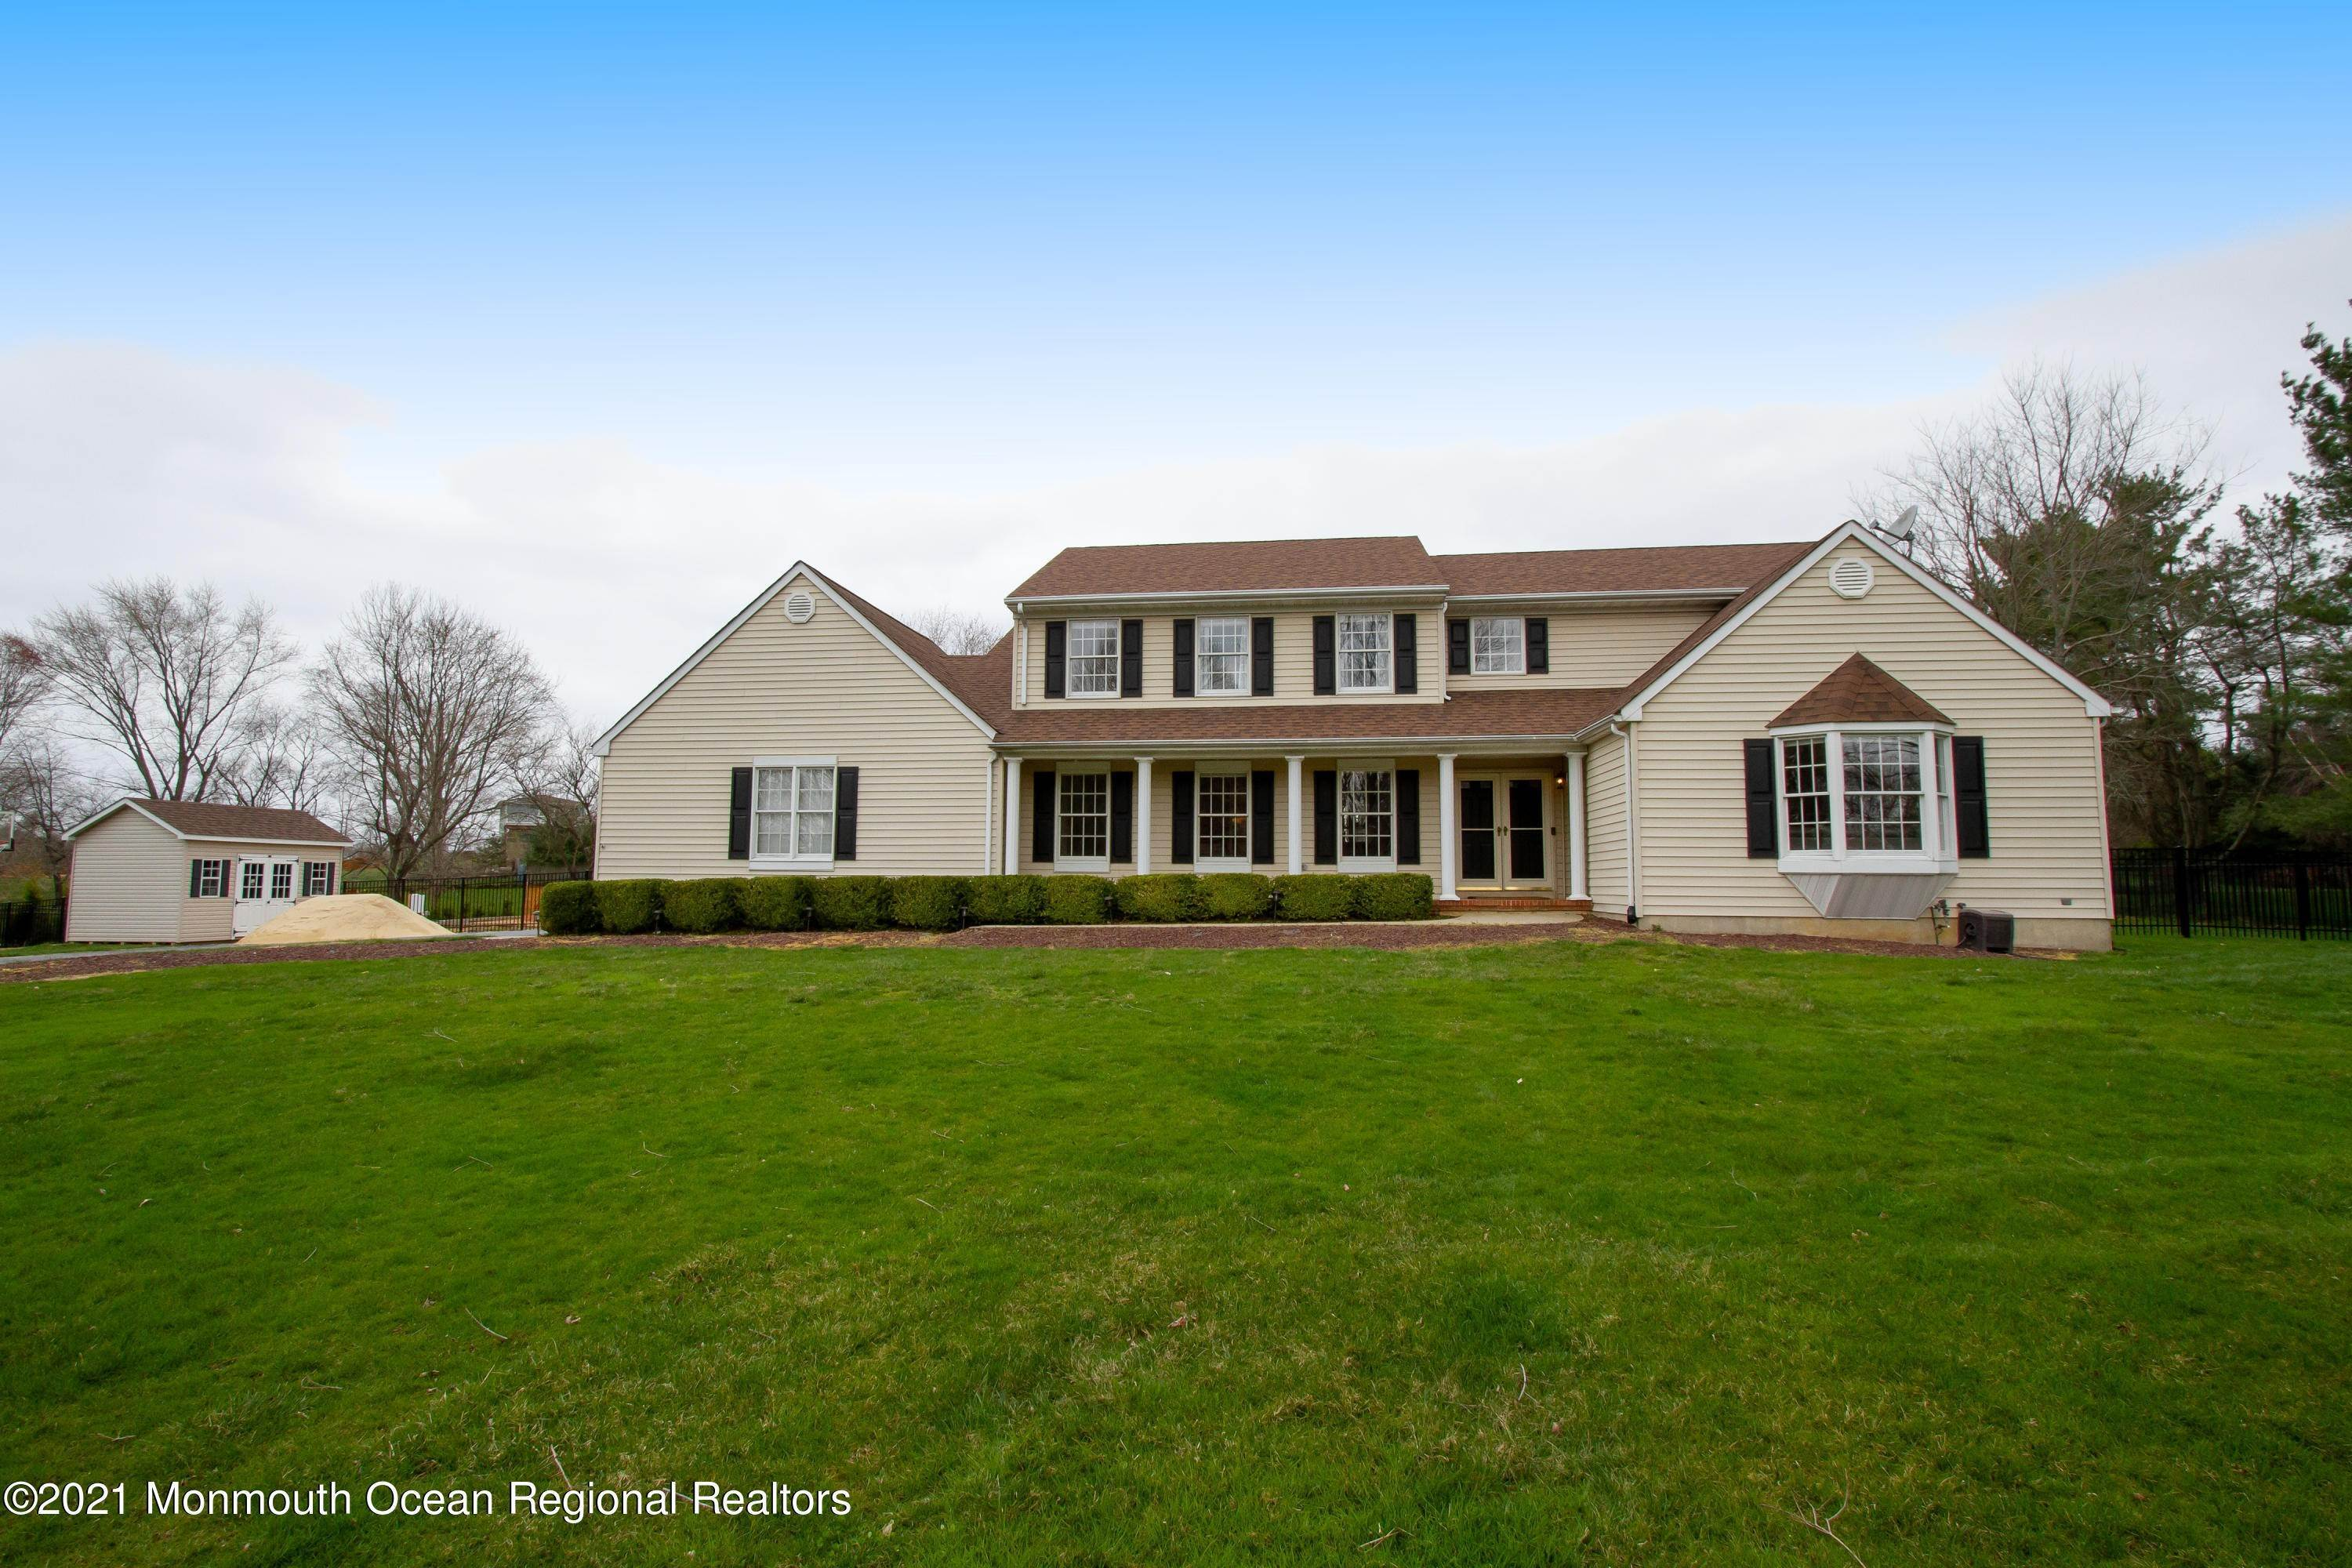 Single Family Homes for Sale at 19 Red Hawk Road Colts Neck, New Jersey 07722 United States